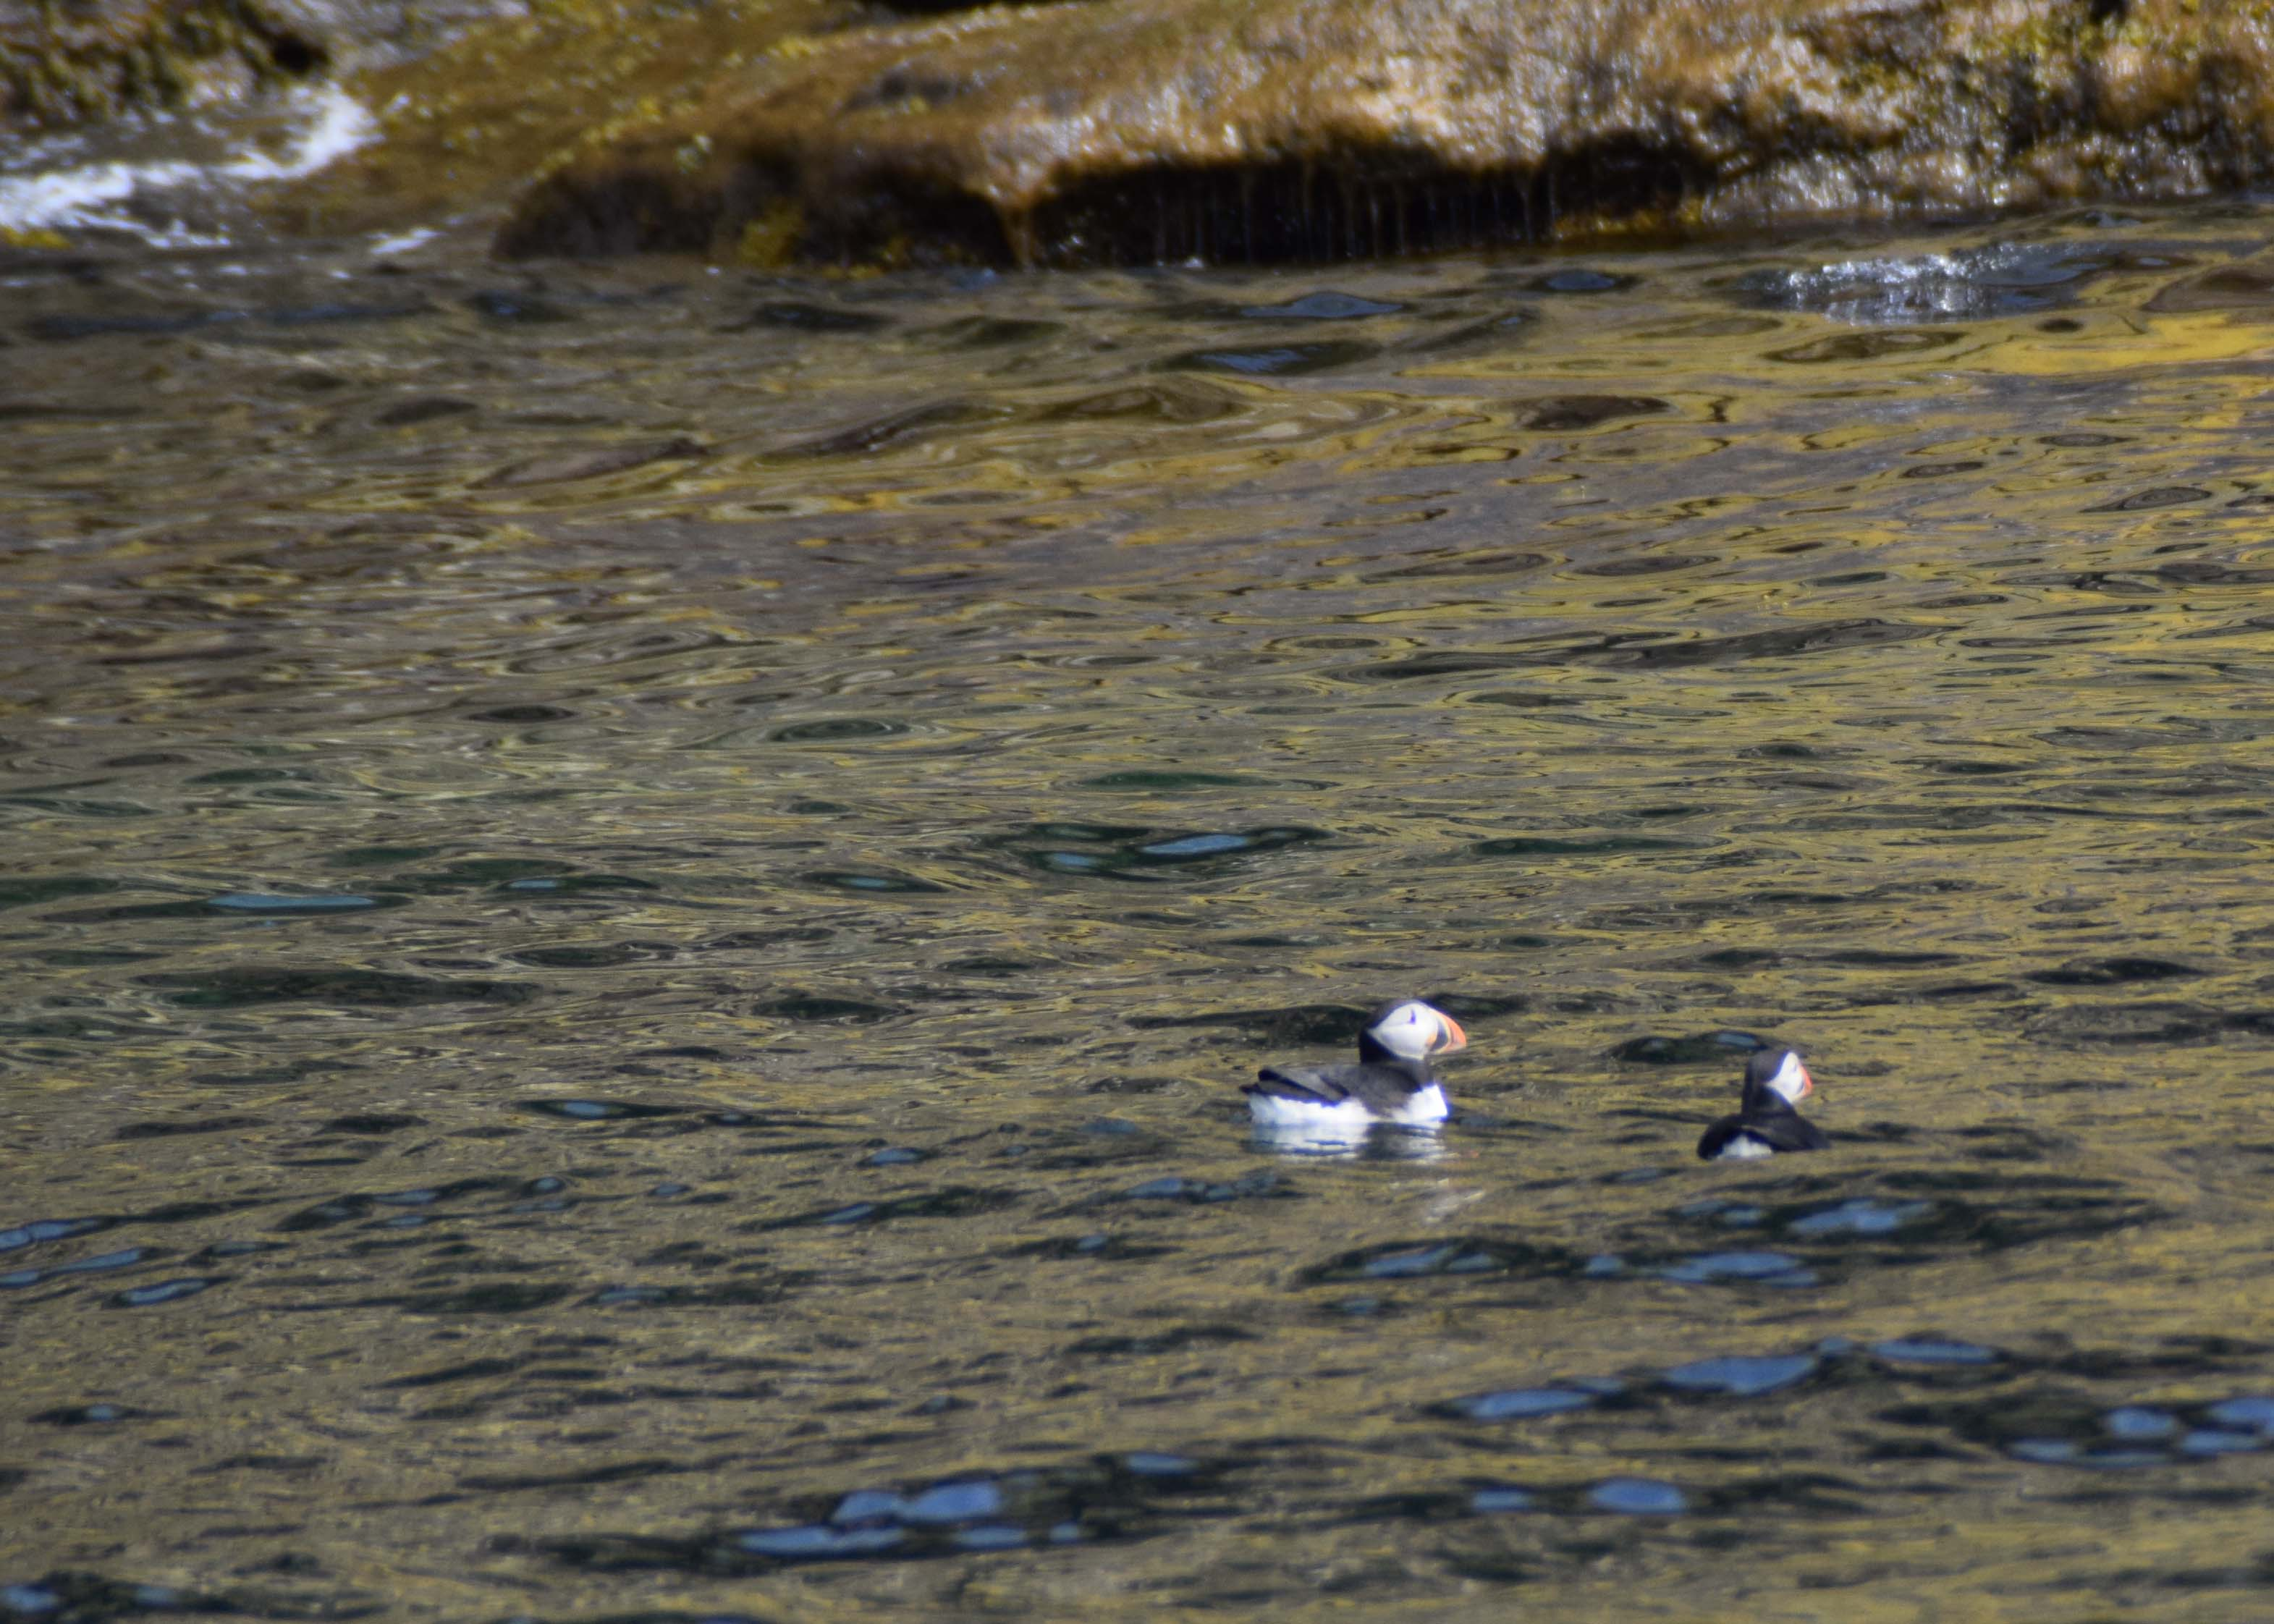 2 Puffins in the water